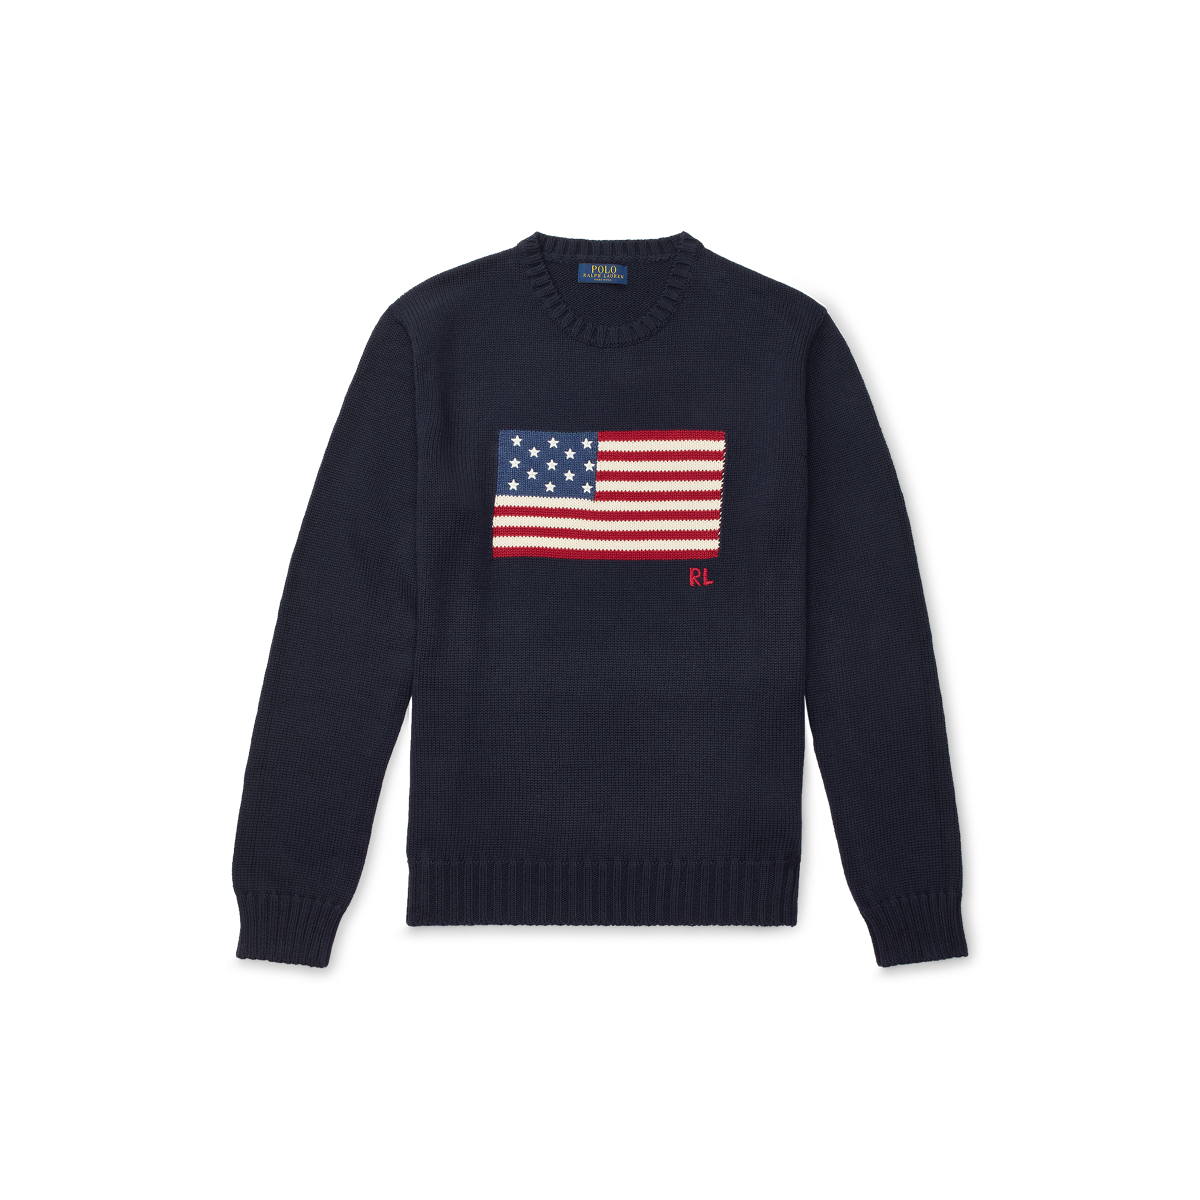 60d5f7e2070b The Iconic Flag Sweater